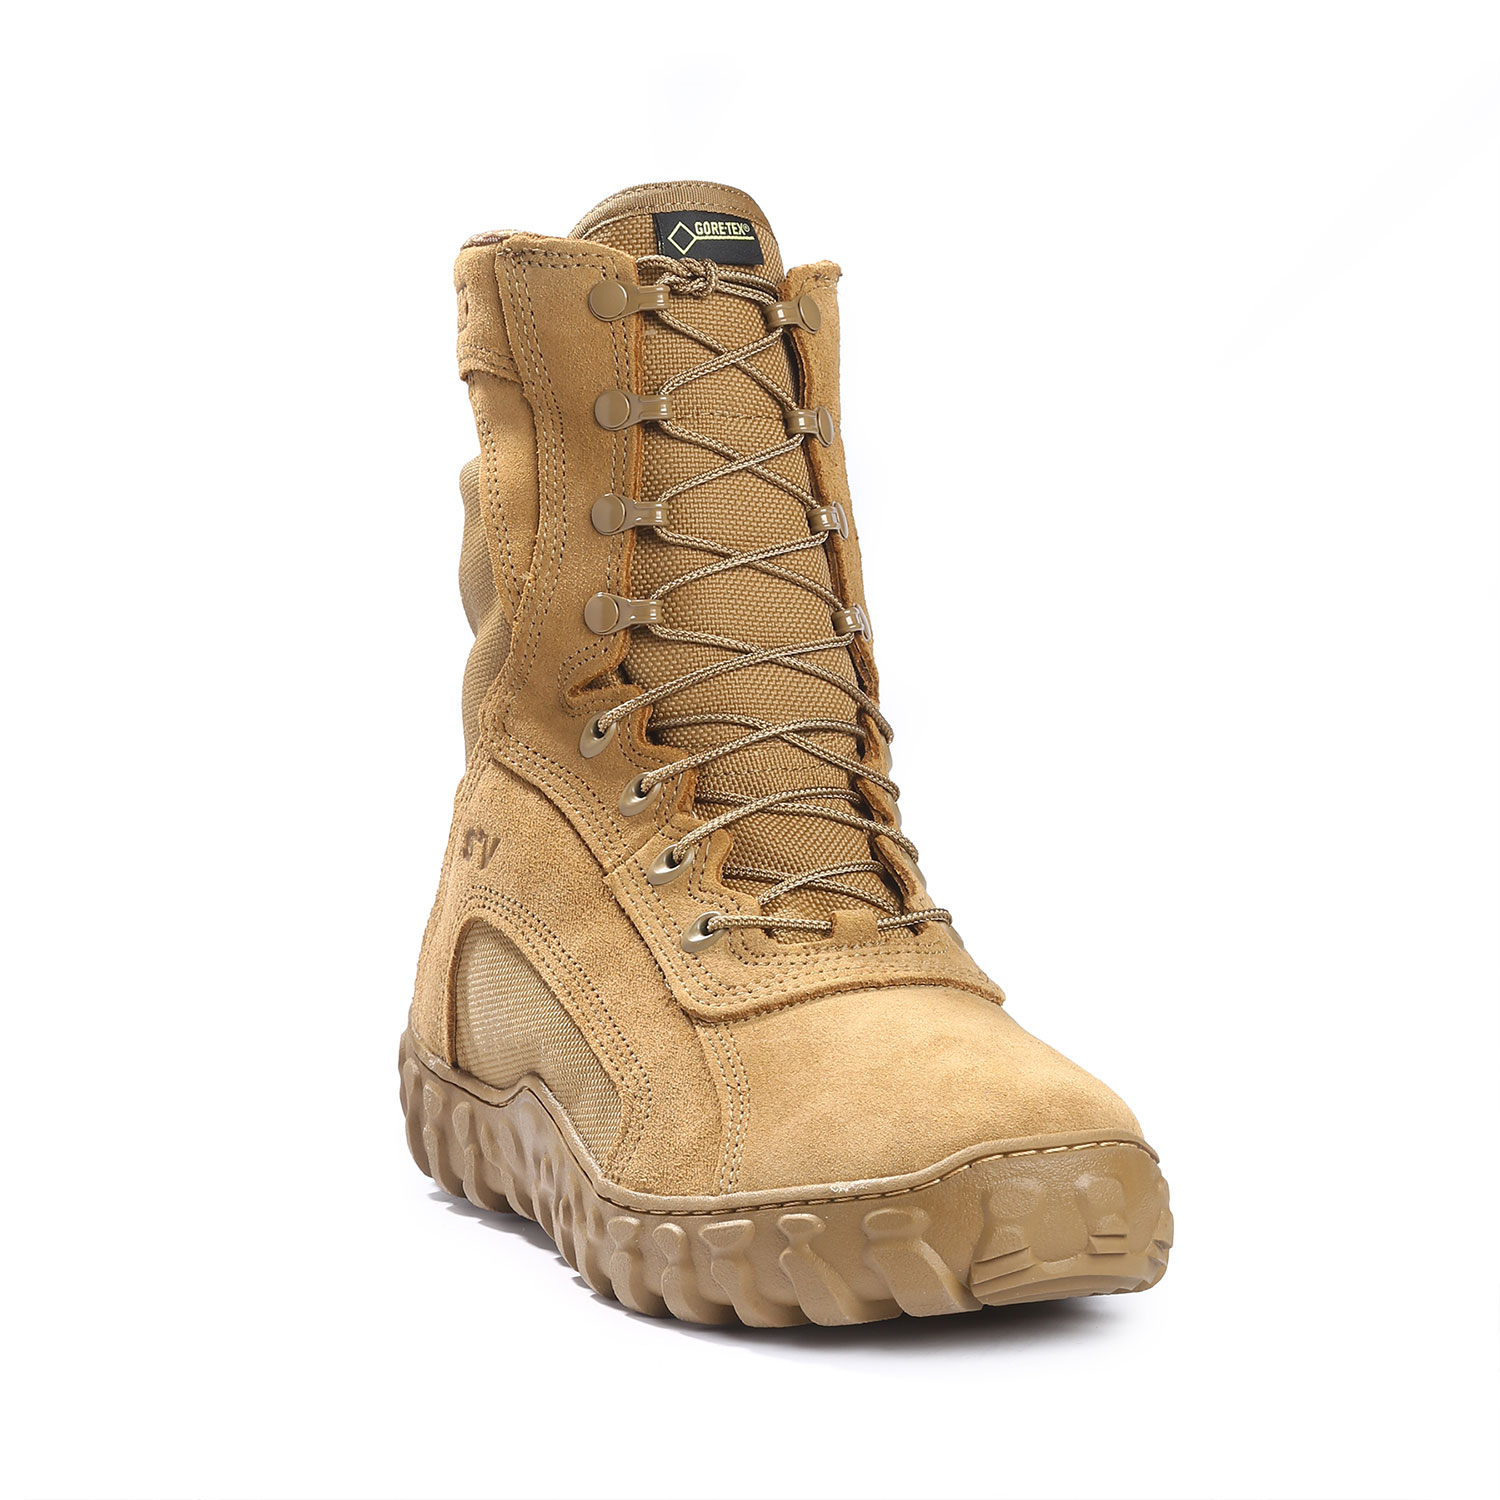 Rocky S2V GORE-TEX Waterproof 400G Insulated Military Boot